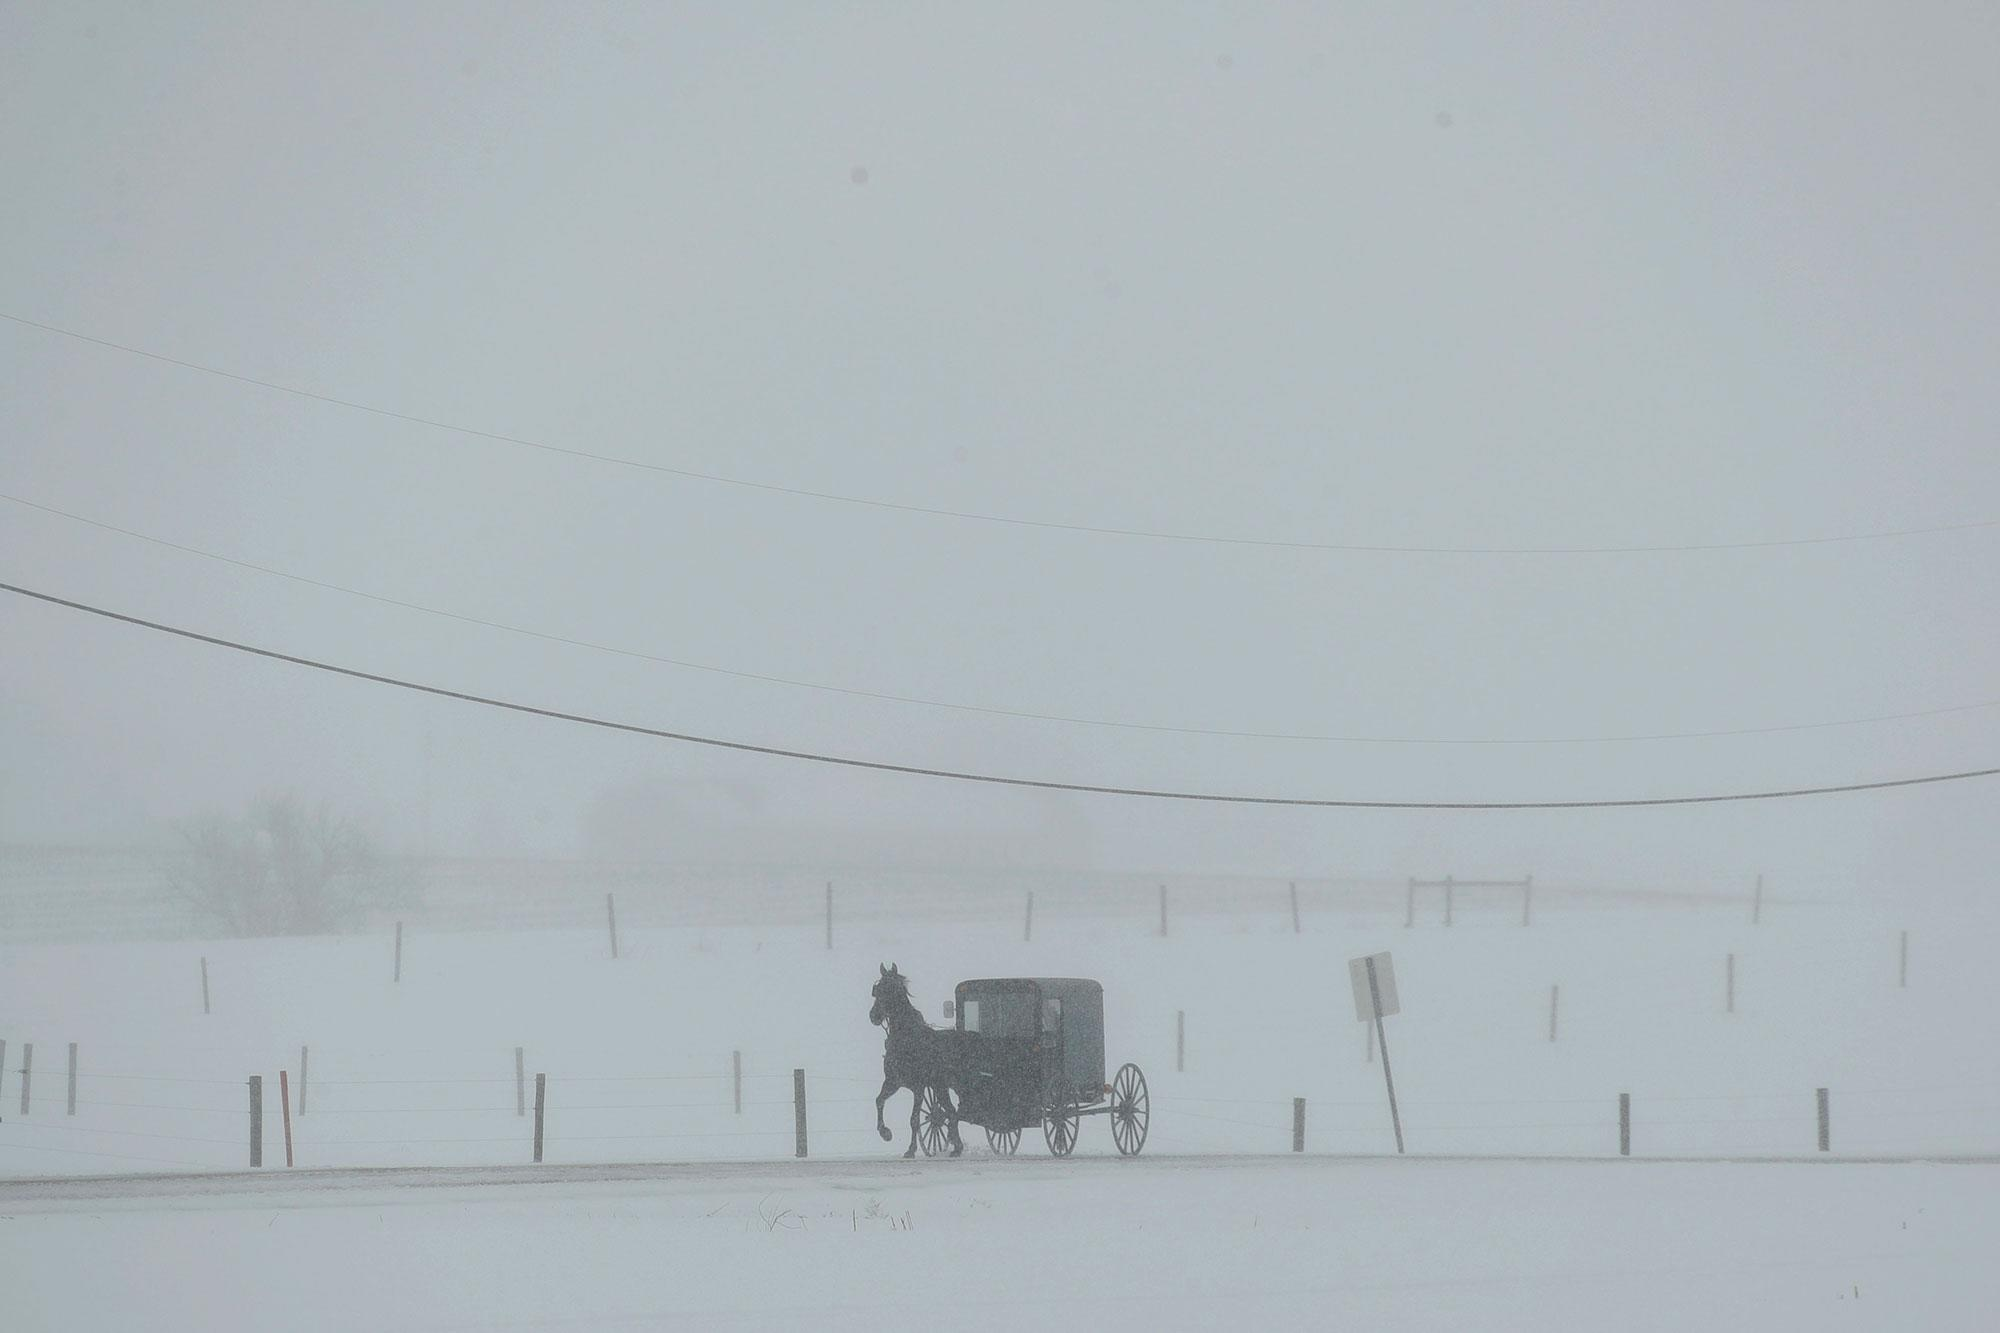 <p>A horse and buggy drive through a winter snow storm, Tuesday, March 14, 2017, in Gap, Pa. (AP Photo/Matt Slocum) </p>